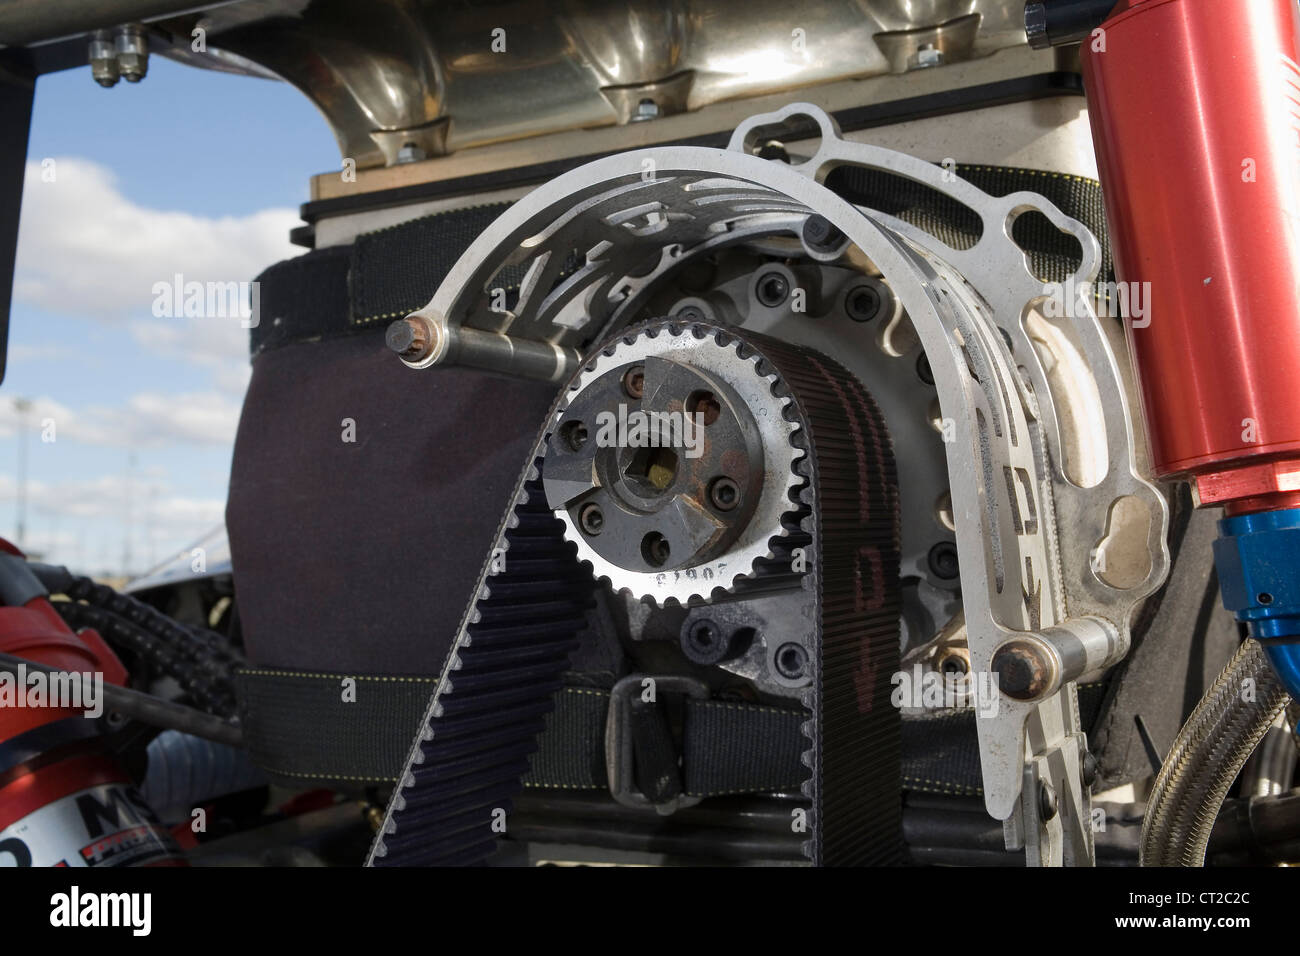 Close up of the belt driven front cog on a supercharger fitted to a drag racing car. - Stock Image